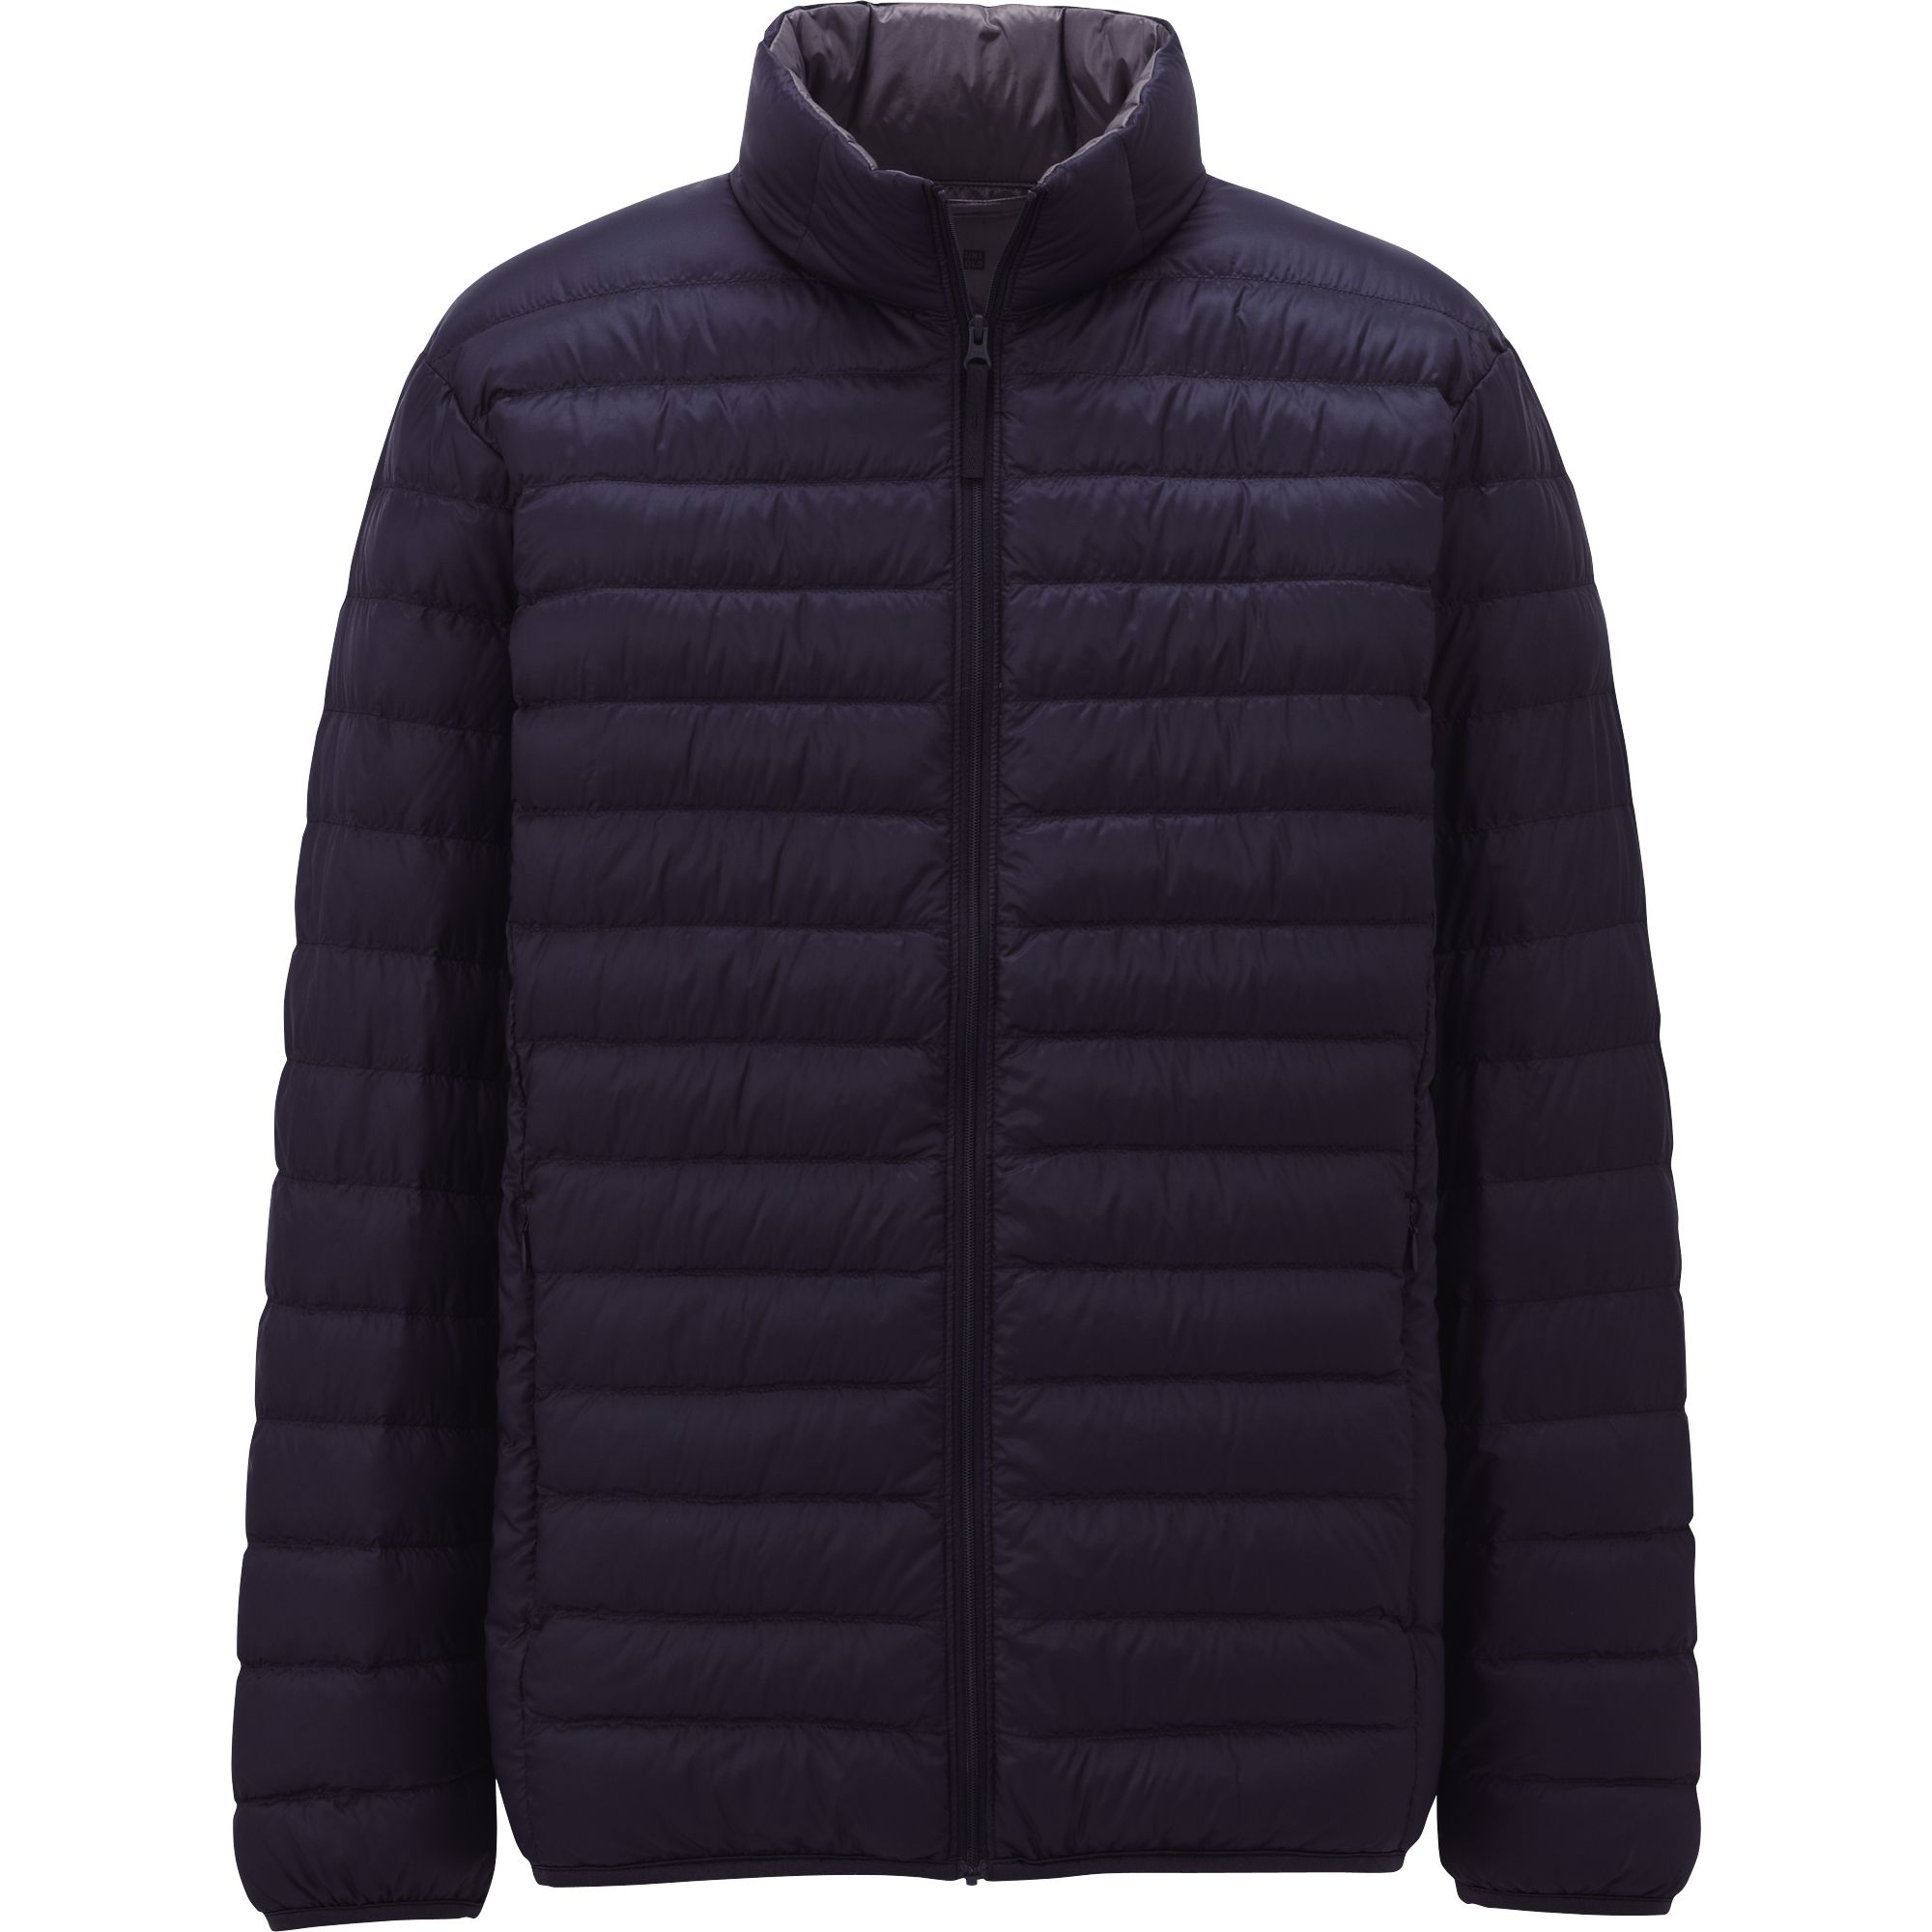 Uniqlo Womens Jacket